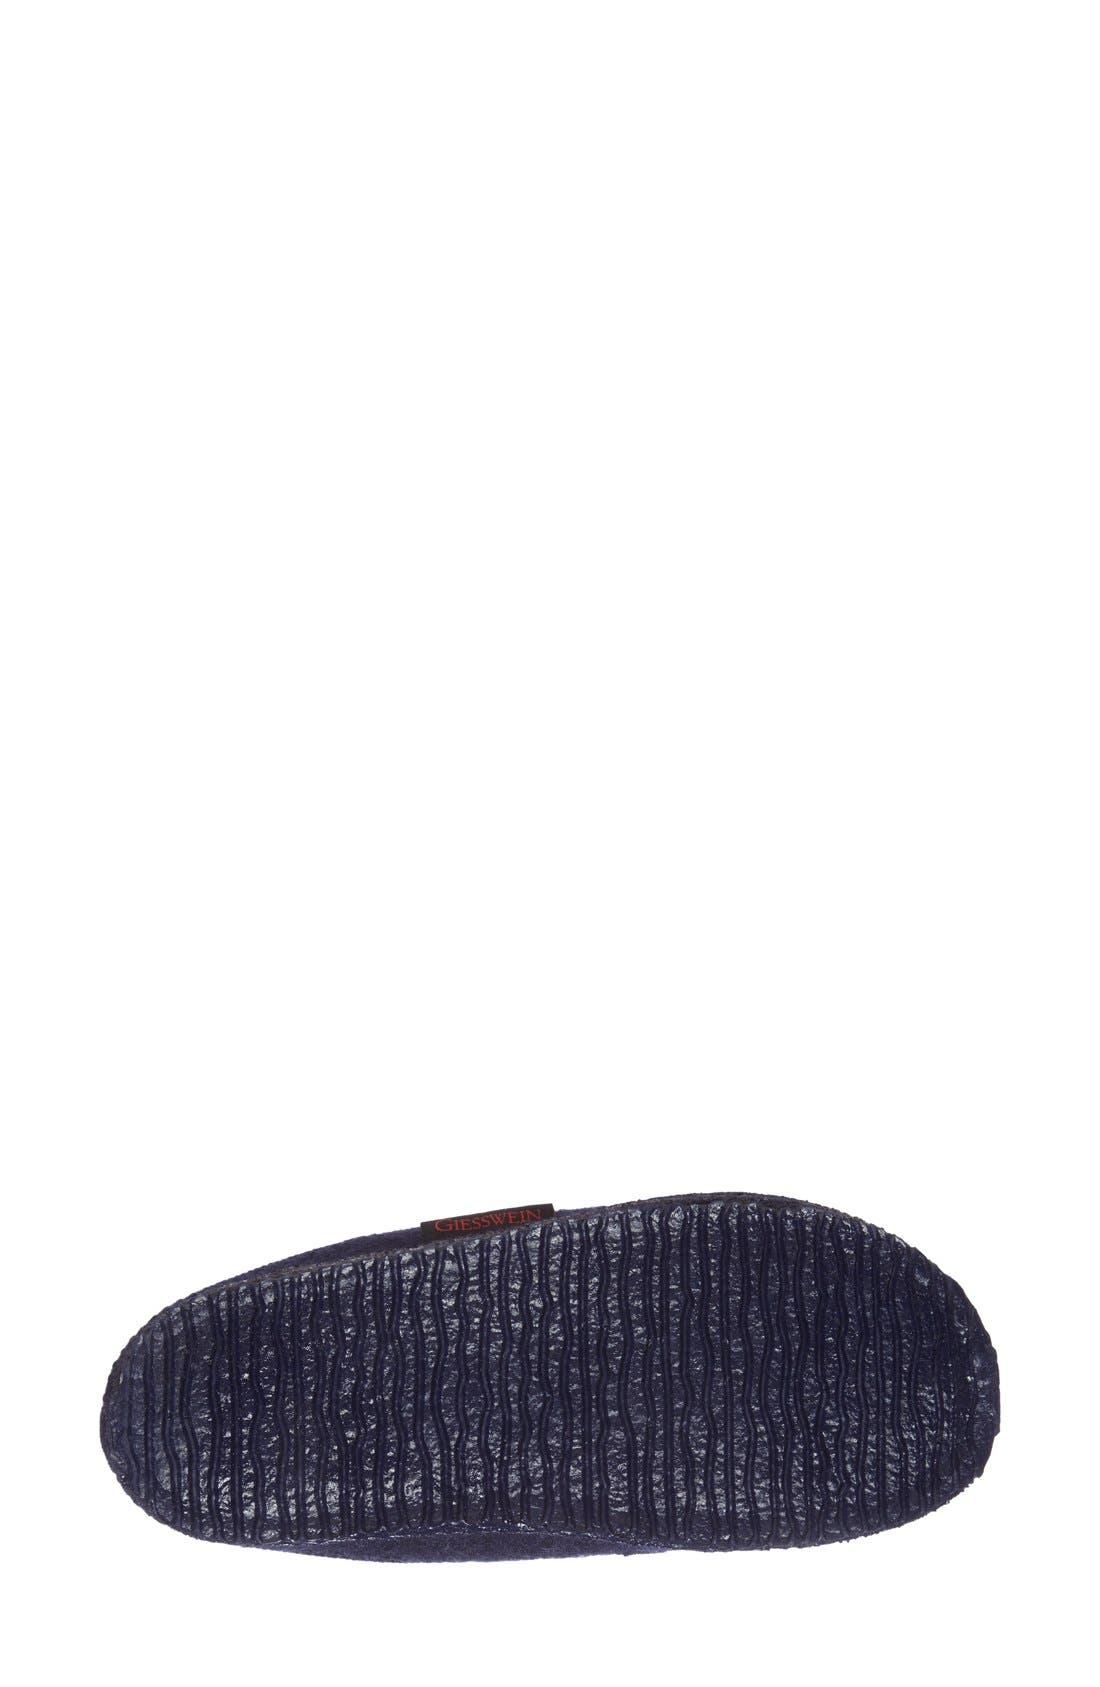 'Mado' Wool Slipper,                             Alternate thumbnail 4, color,                             Navy Wool